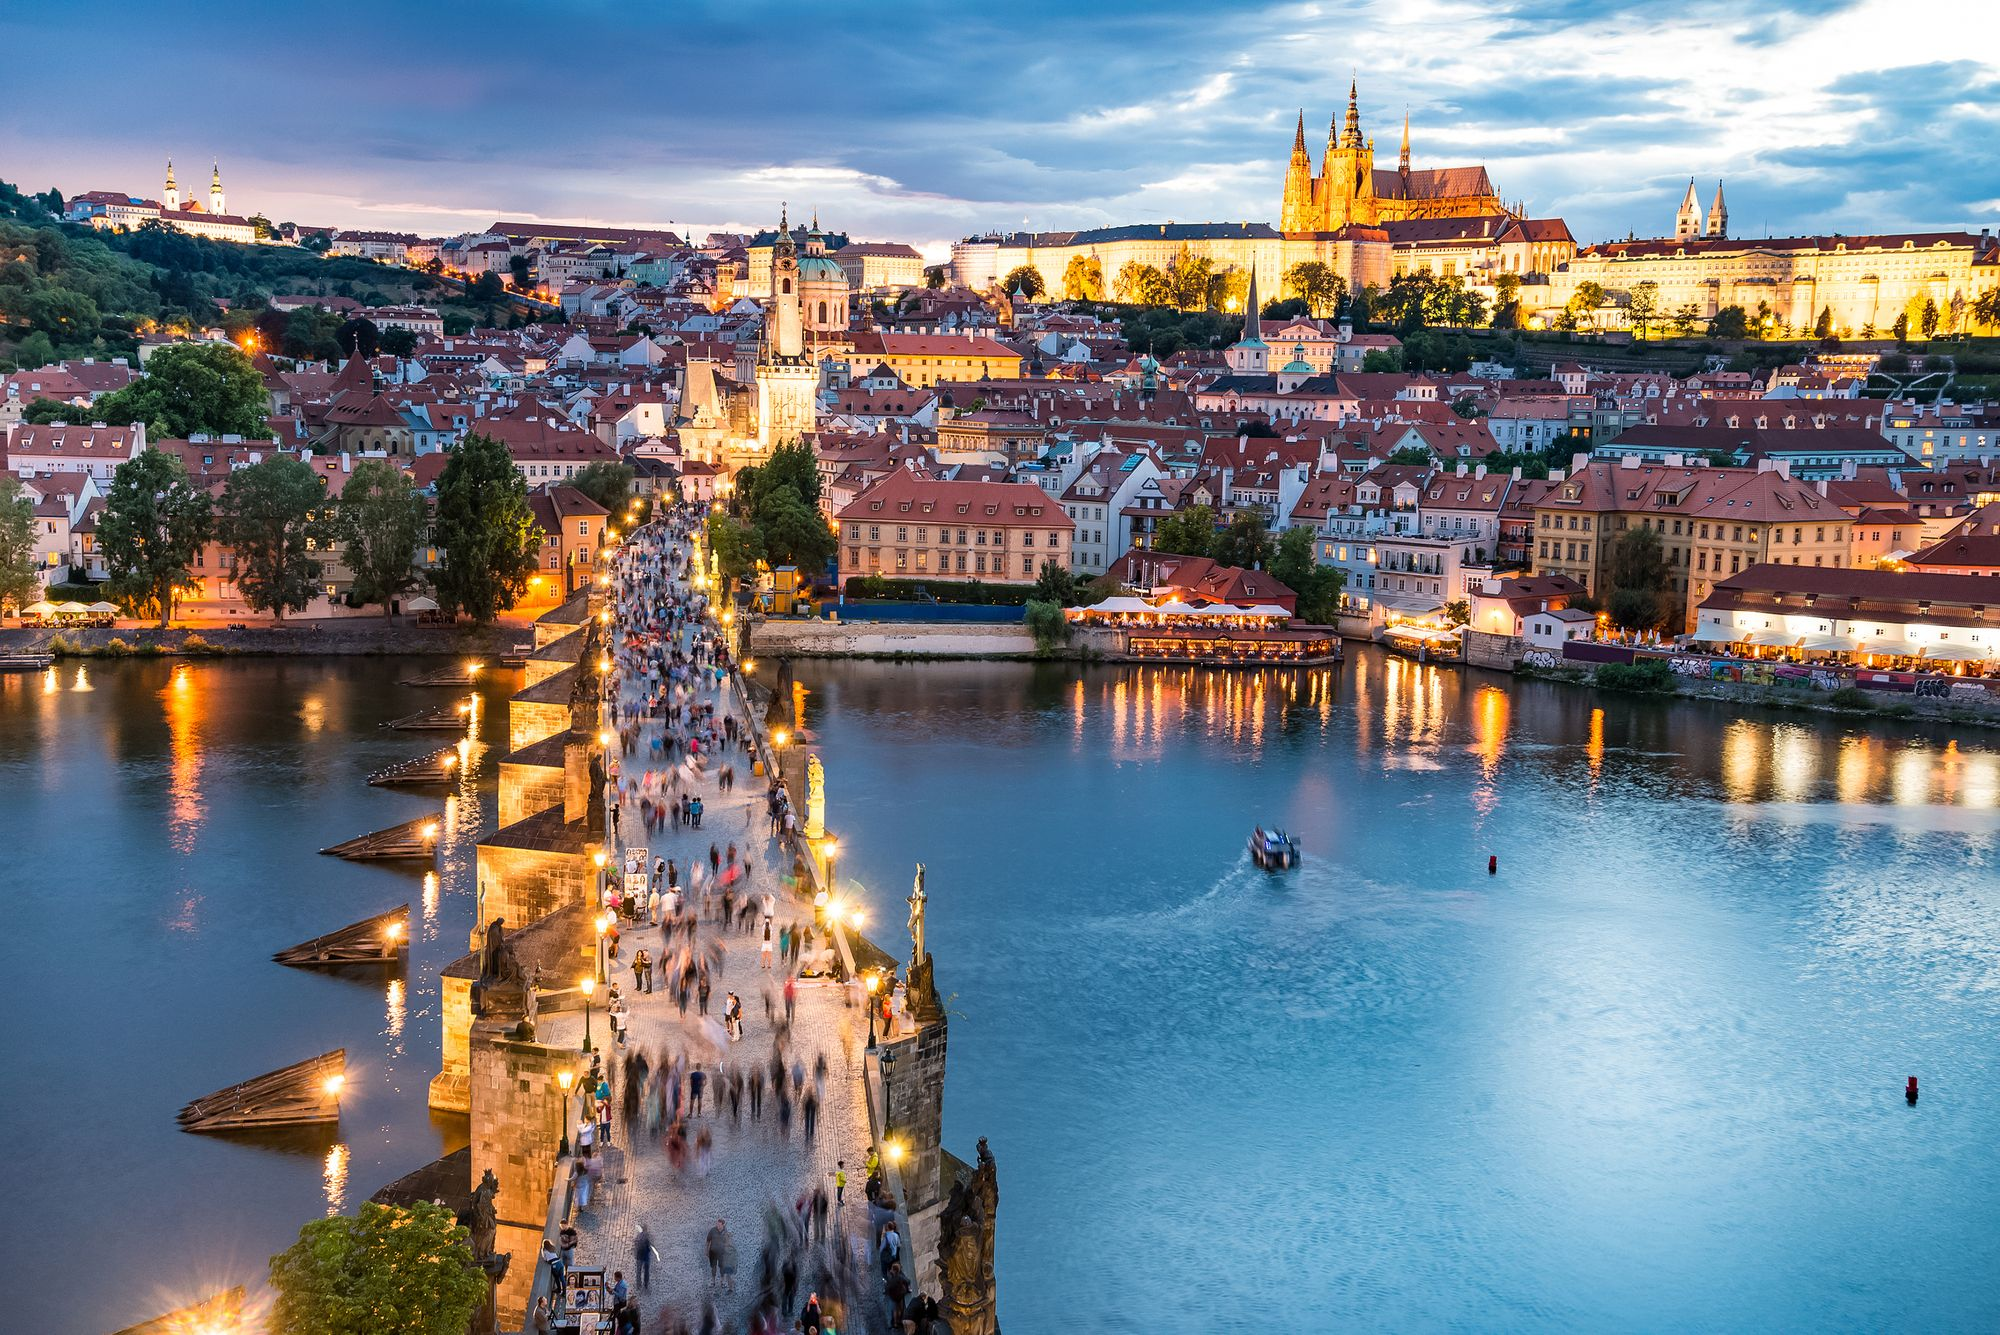 Praha (Prague), Czech Republic - Monterrasol private tours to Praha (Prague), Czech Republic. Travel agency offers custom private car tours to see Praha (Prague) in Czech Republic. Order custom private tour to Praha (Prague) with departure date on request.